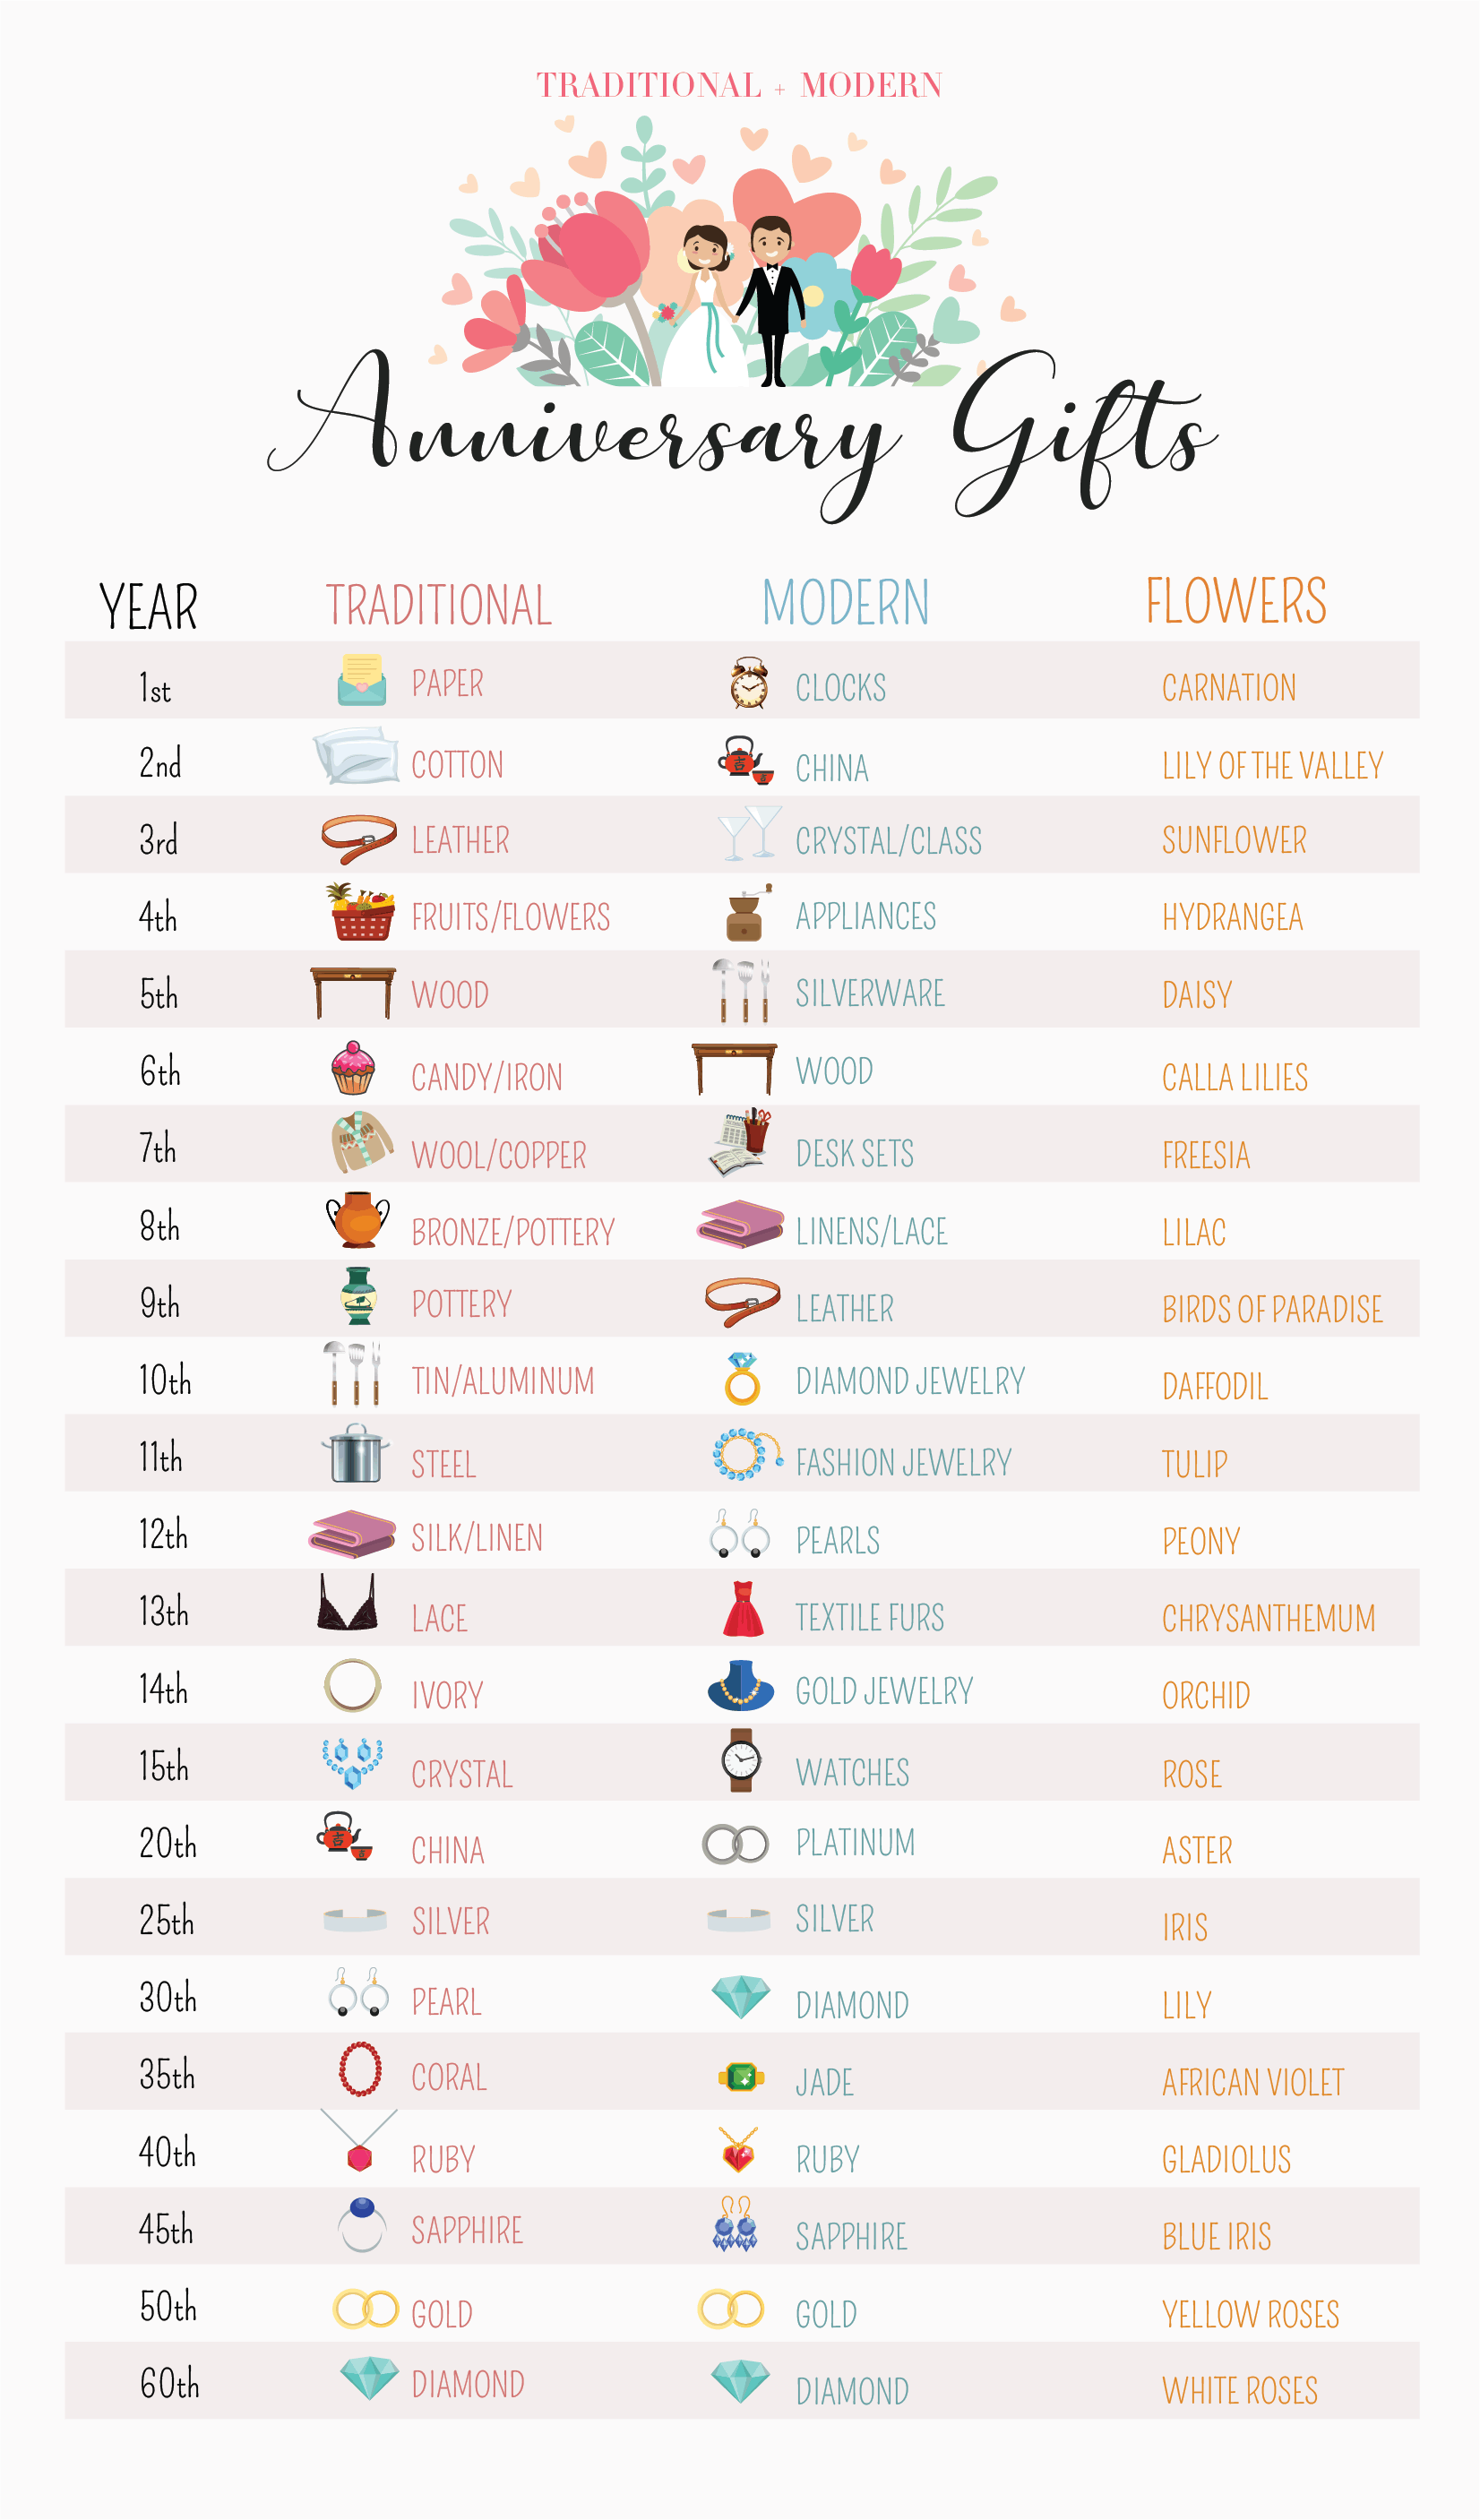 Anniversary Gifts by Year Guide Traditional and Modern